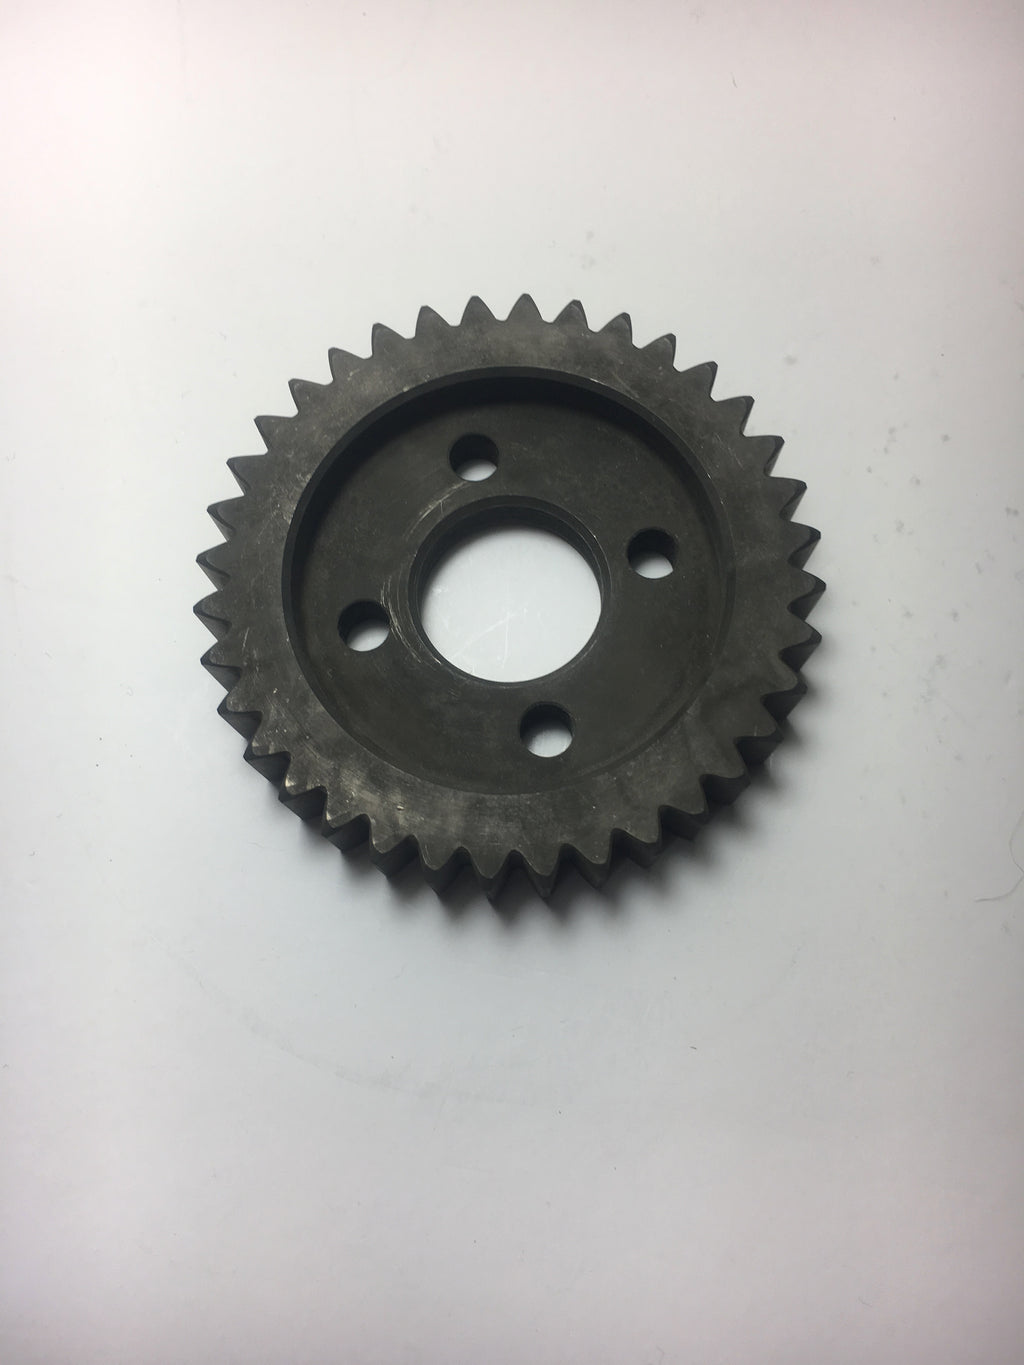 Mitsubishi Gear Part# KA92620